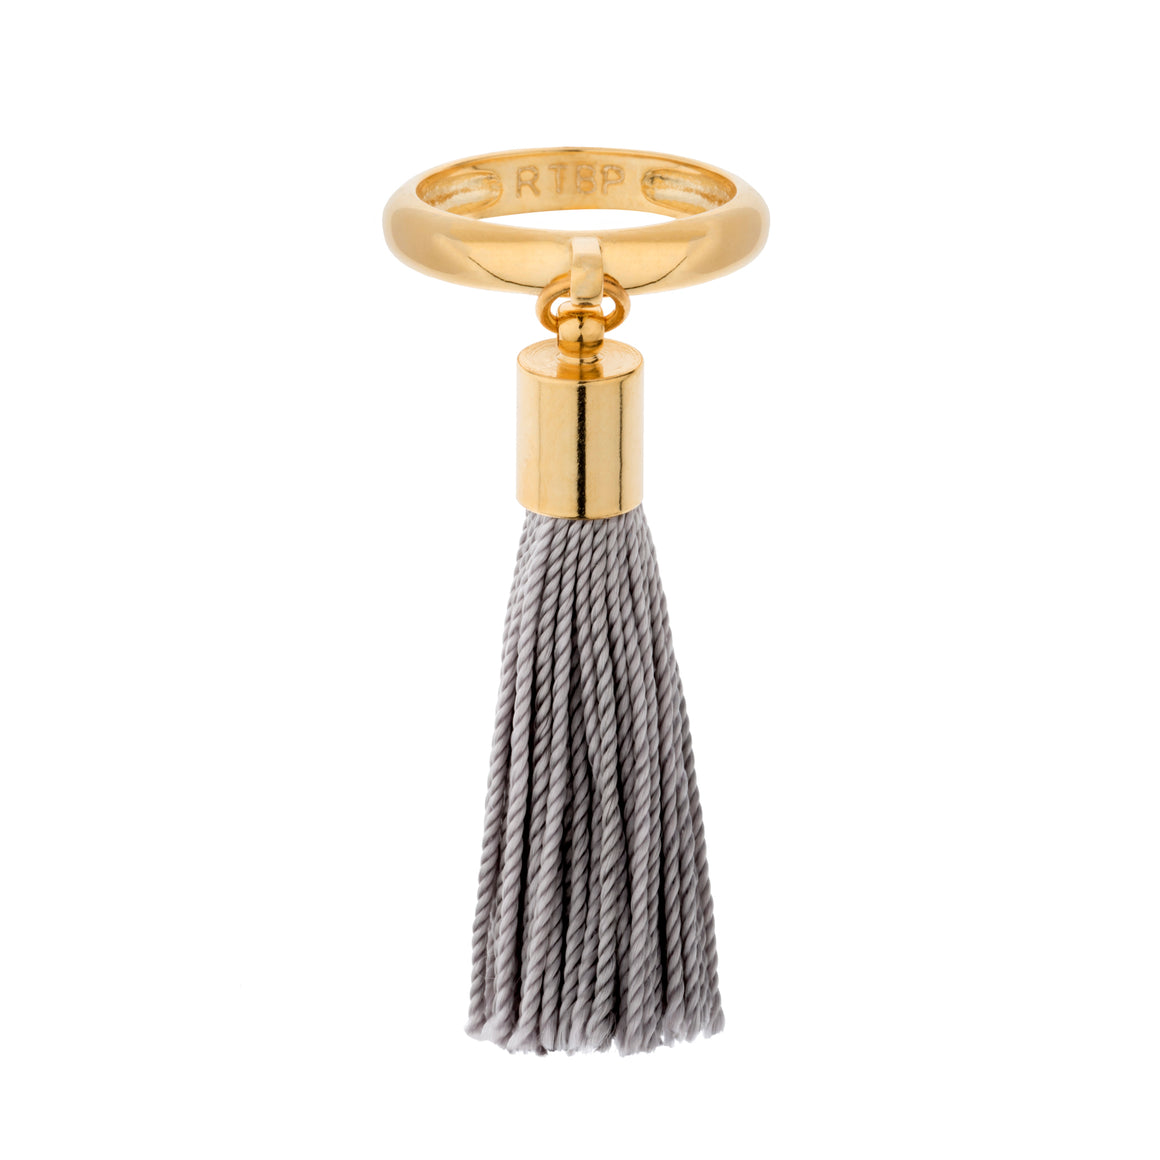 Eclipse Tassel Ring - Grey